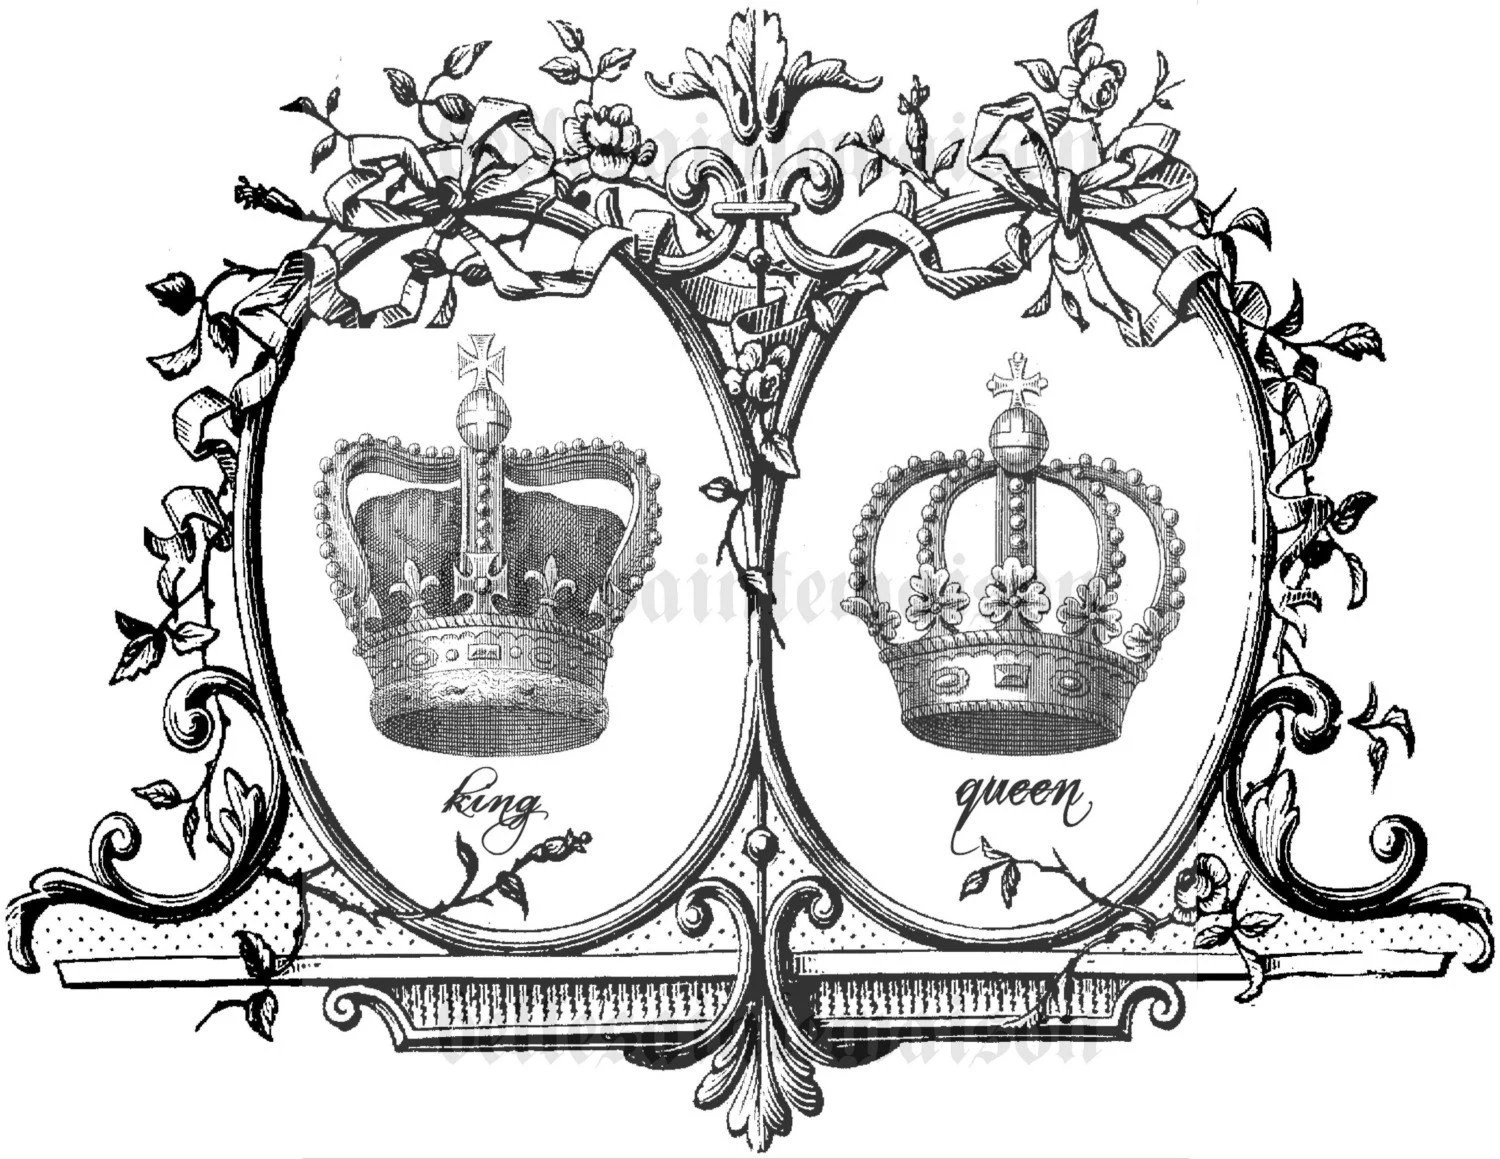 King And Queen Crown Sketch